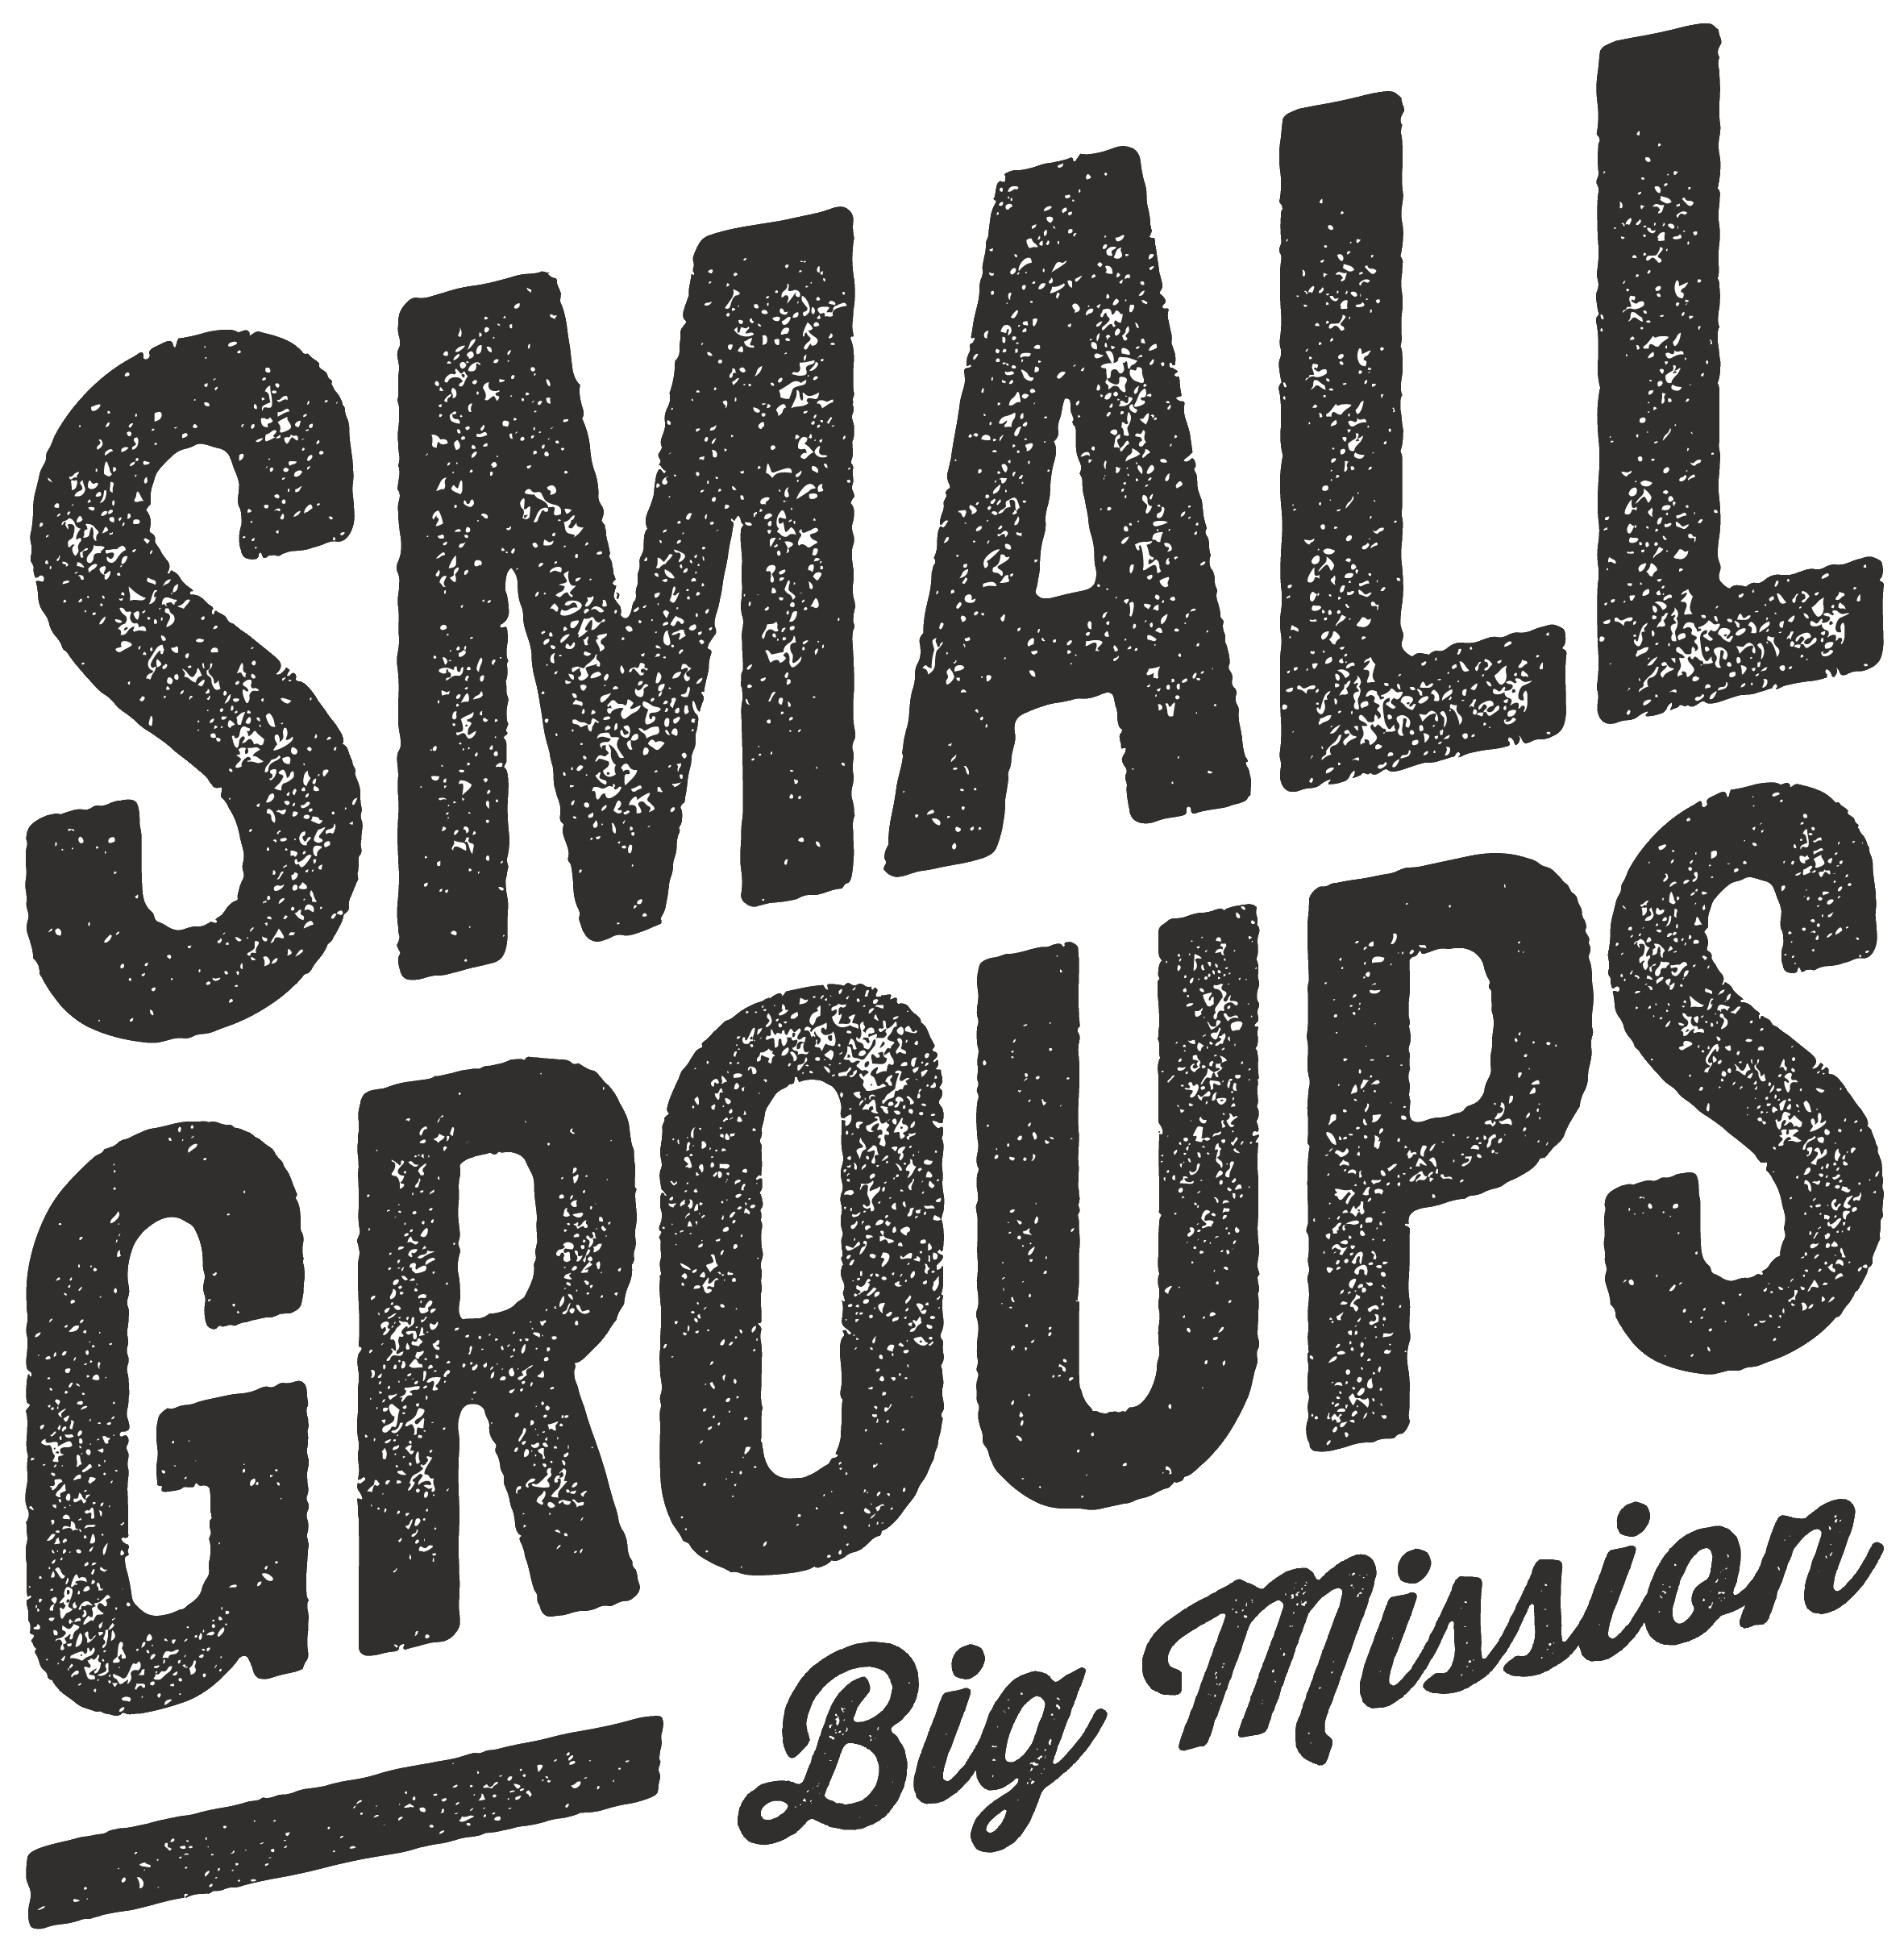 Small Groups, Big Mission